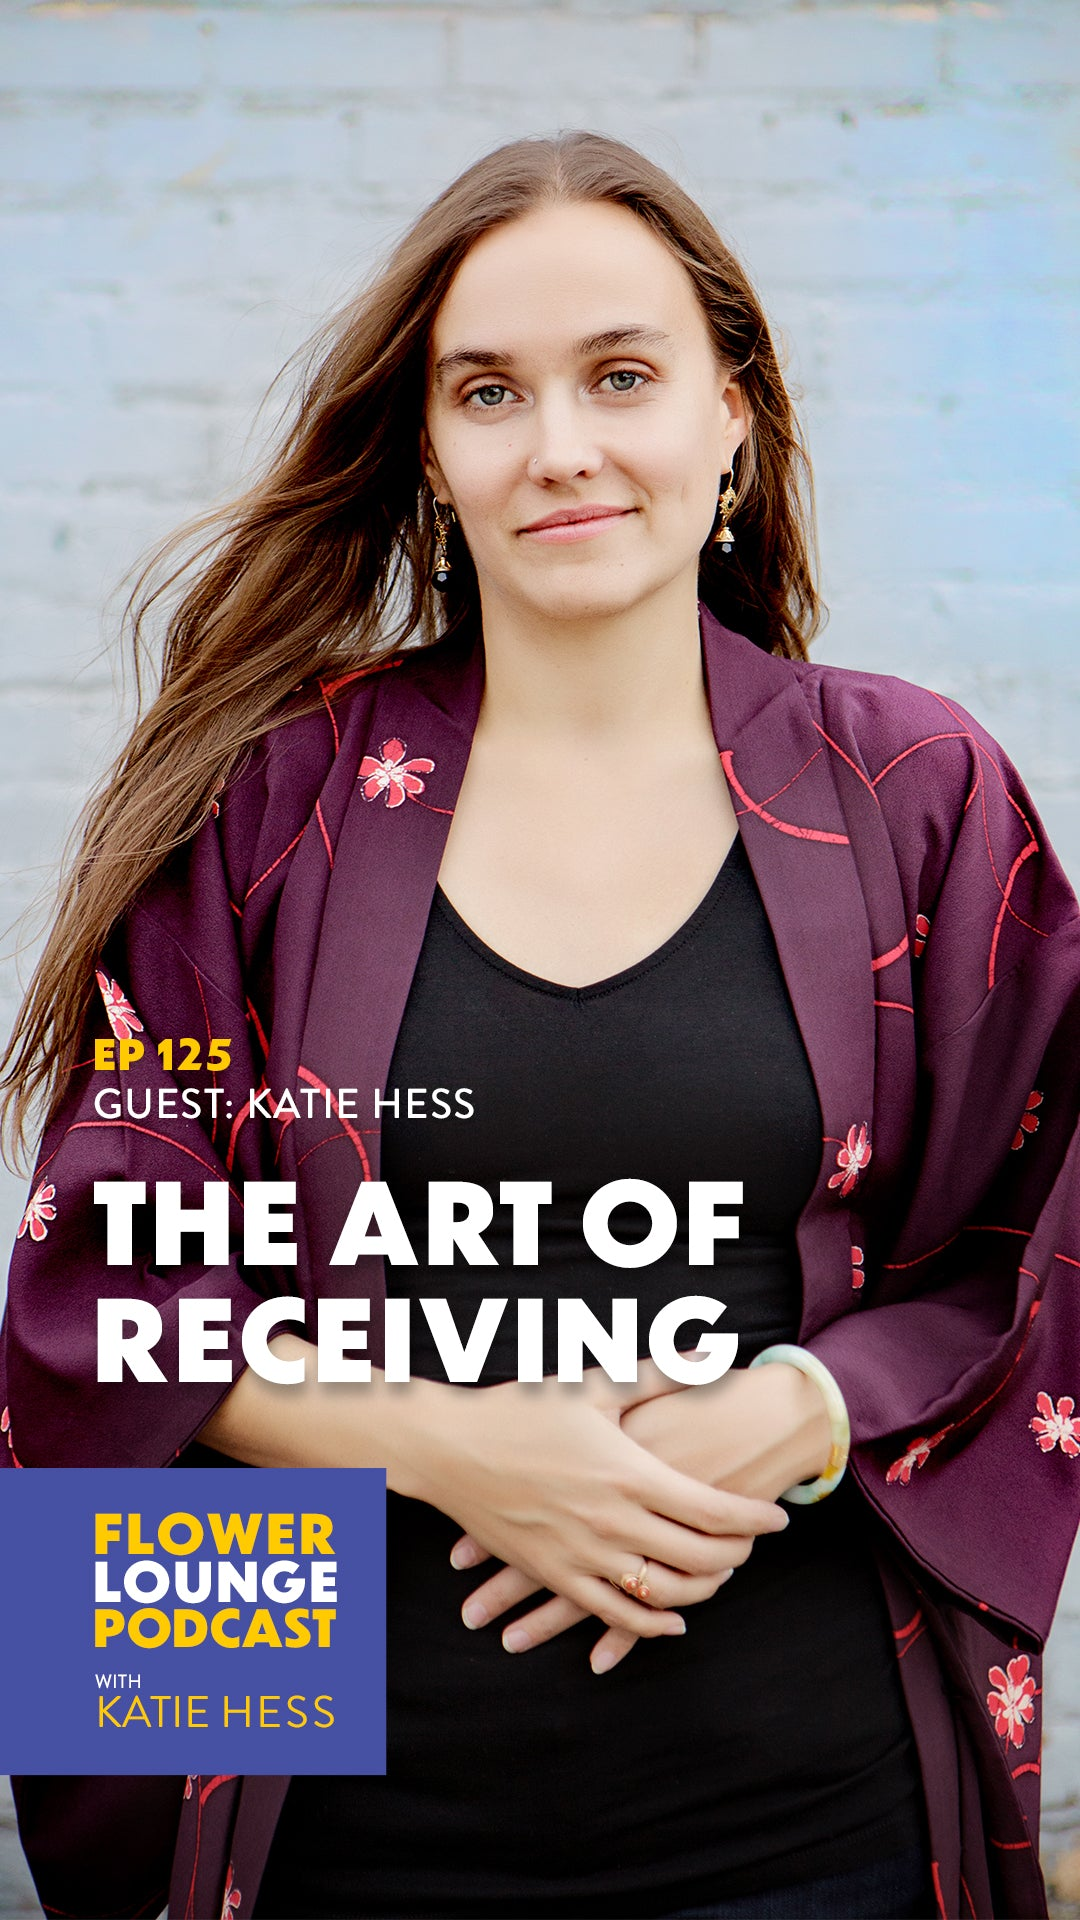 The Art of Receiving with Katie Hess on the Flowerlounge Podcast